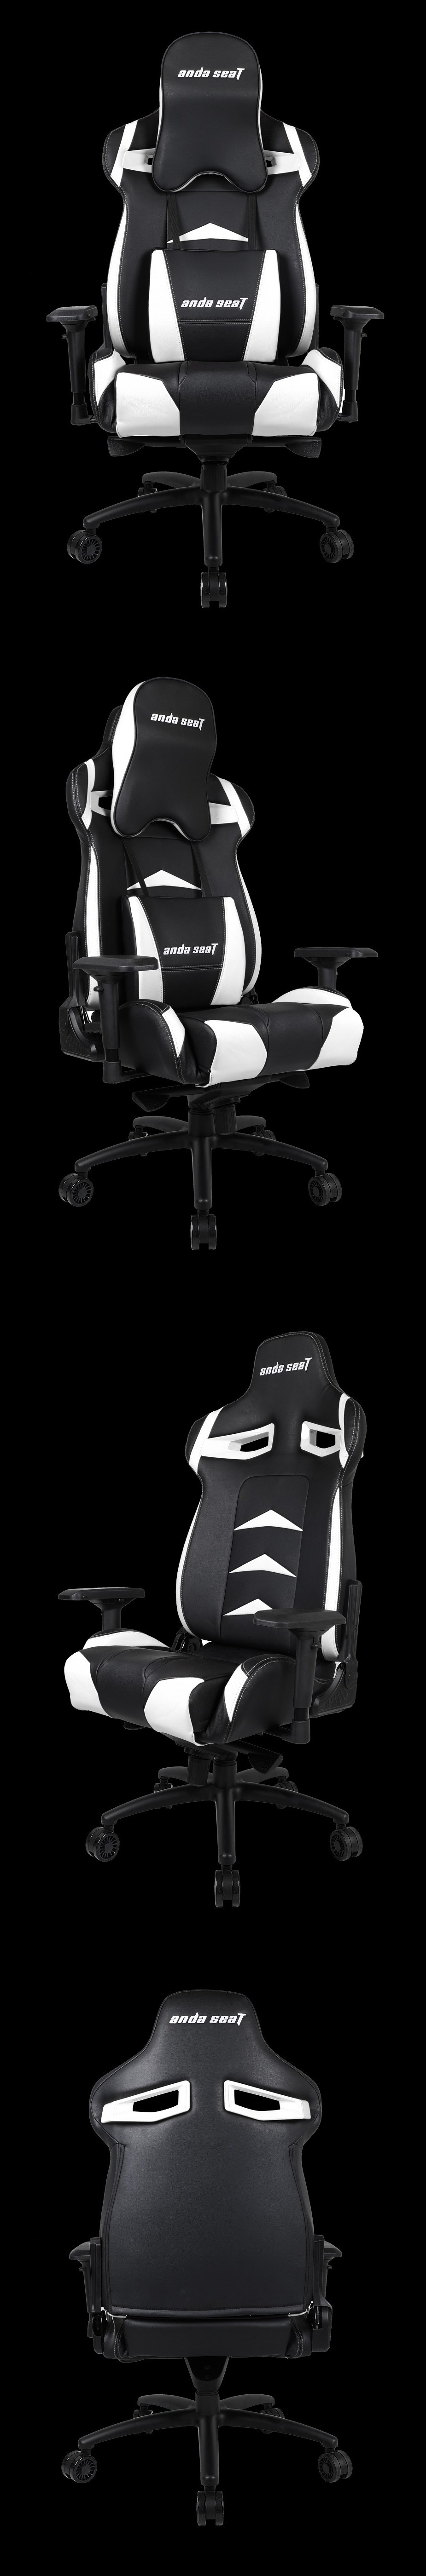 Anda Seal AD3XL-01 Gaming Chair - Black/White - Desktop Overview 2